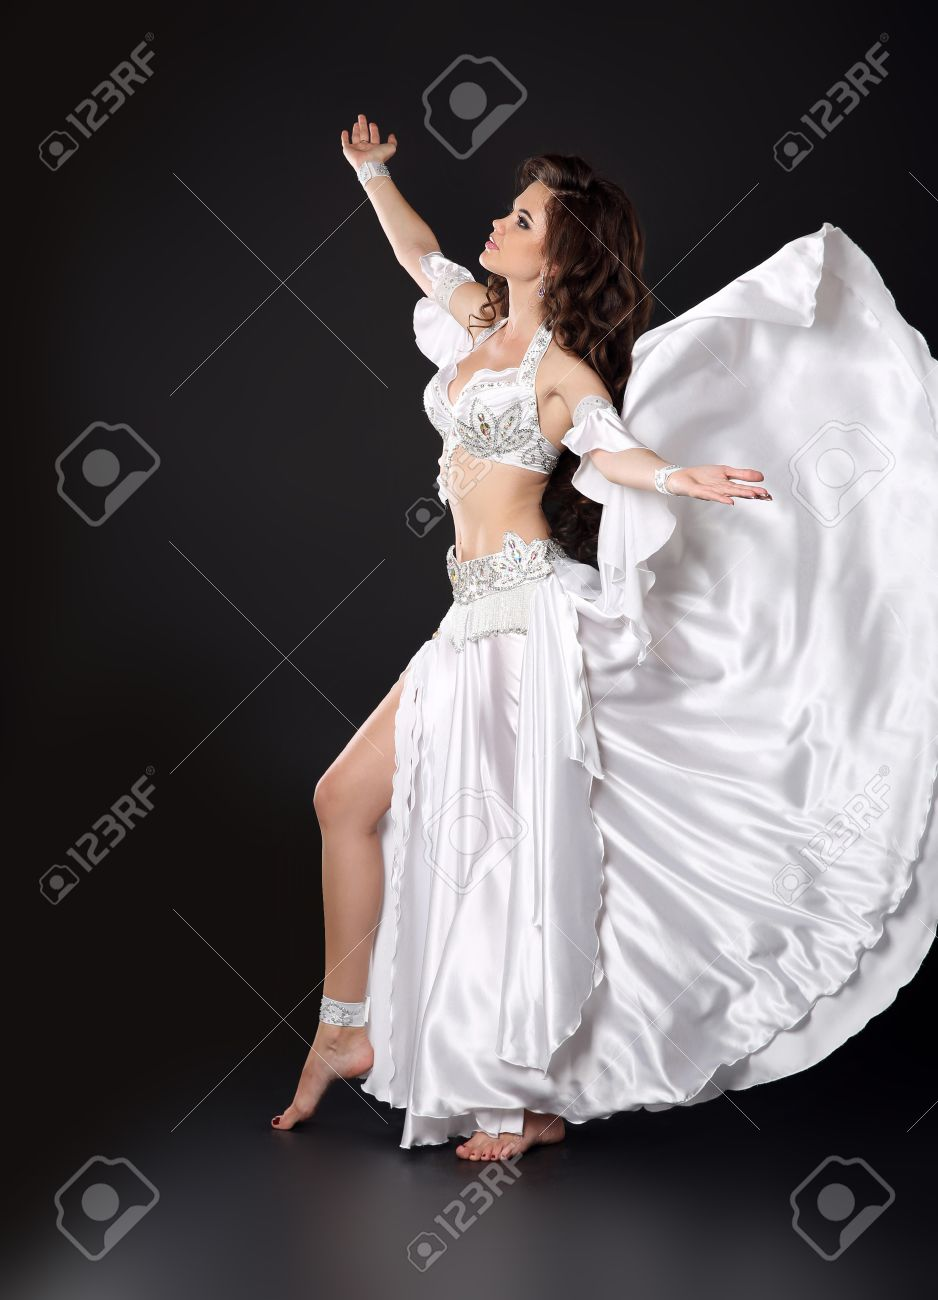 Beautiful Arabian Bellydancer Sexy Woman In Bellydance White Costume Over Black Studio Background Sensual Arabic